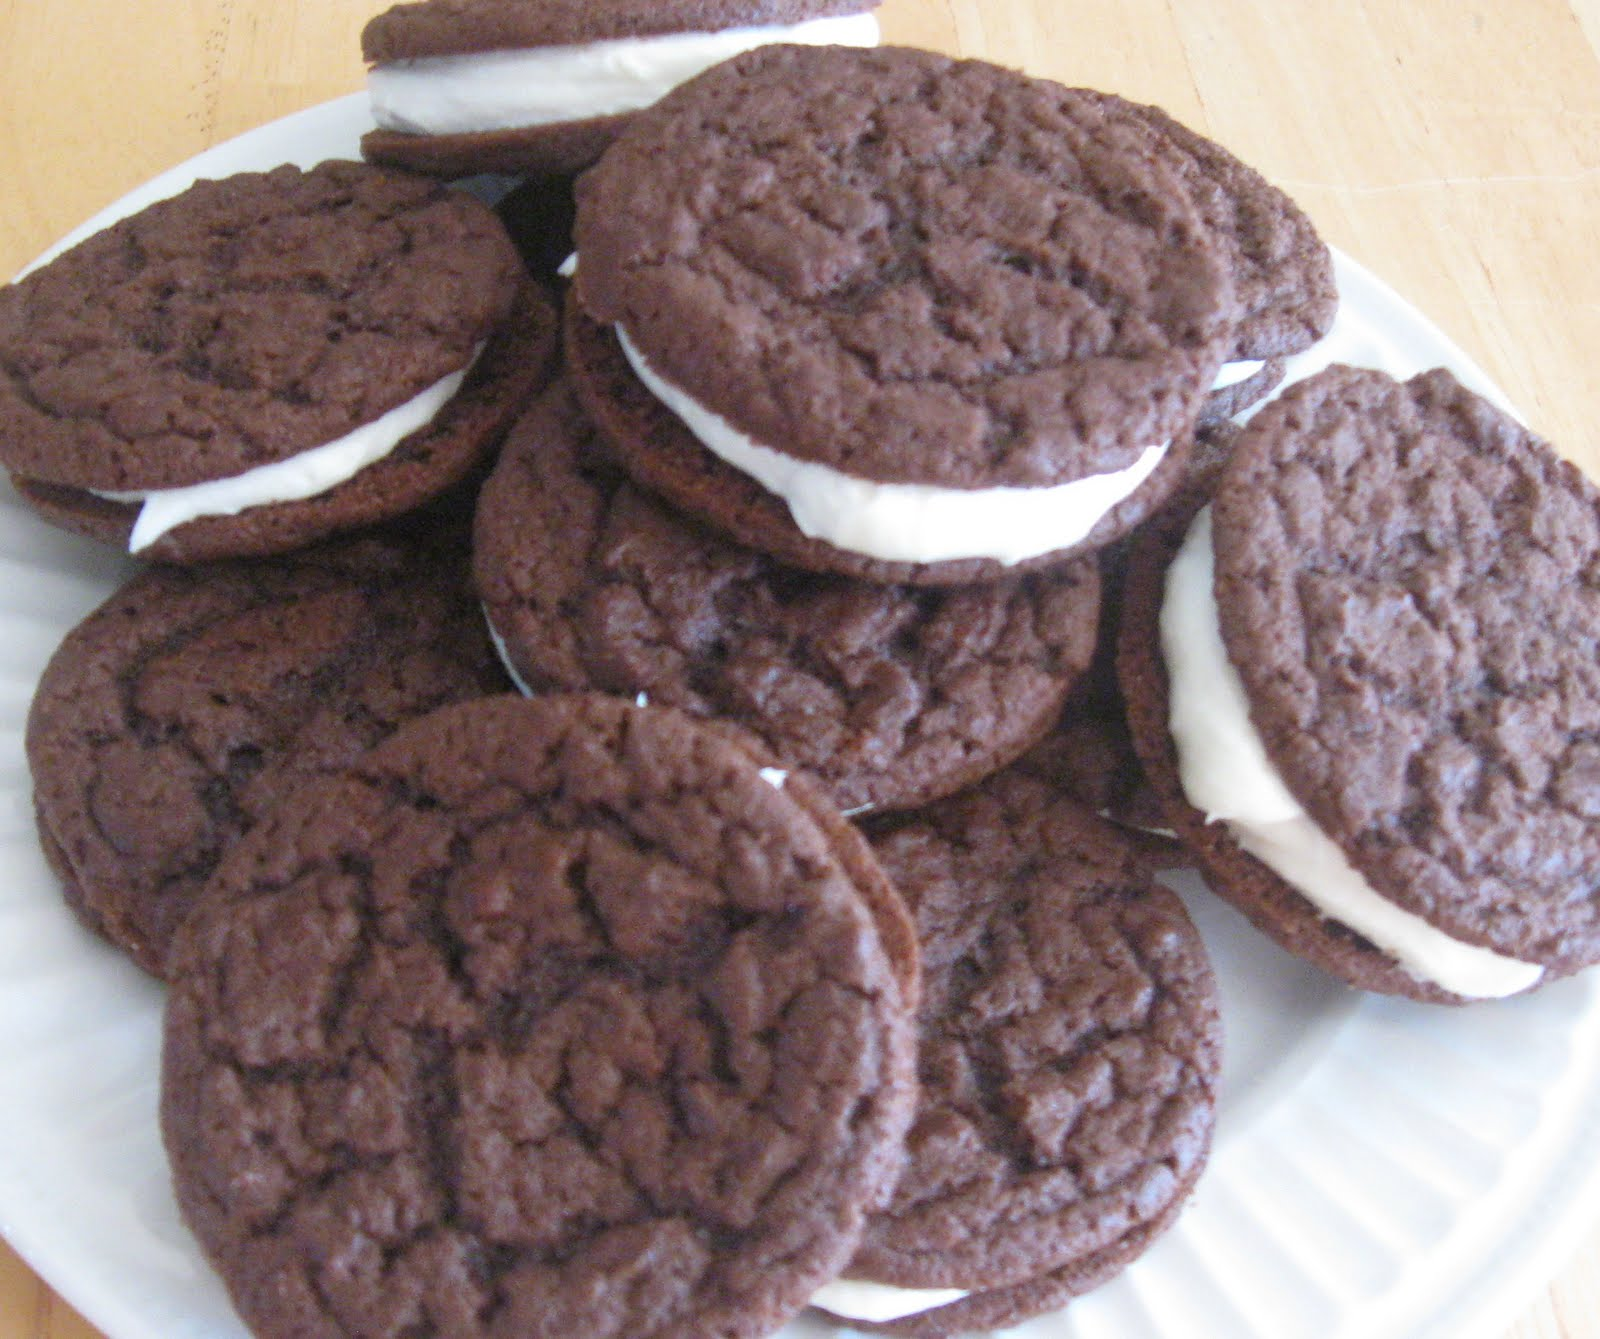 The Marriage of Ingredients: Homemade Oreo Cookies